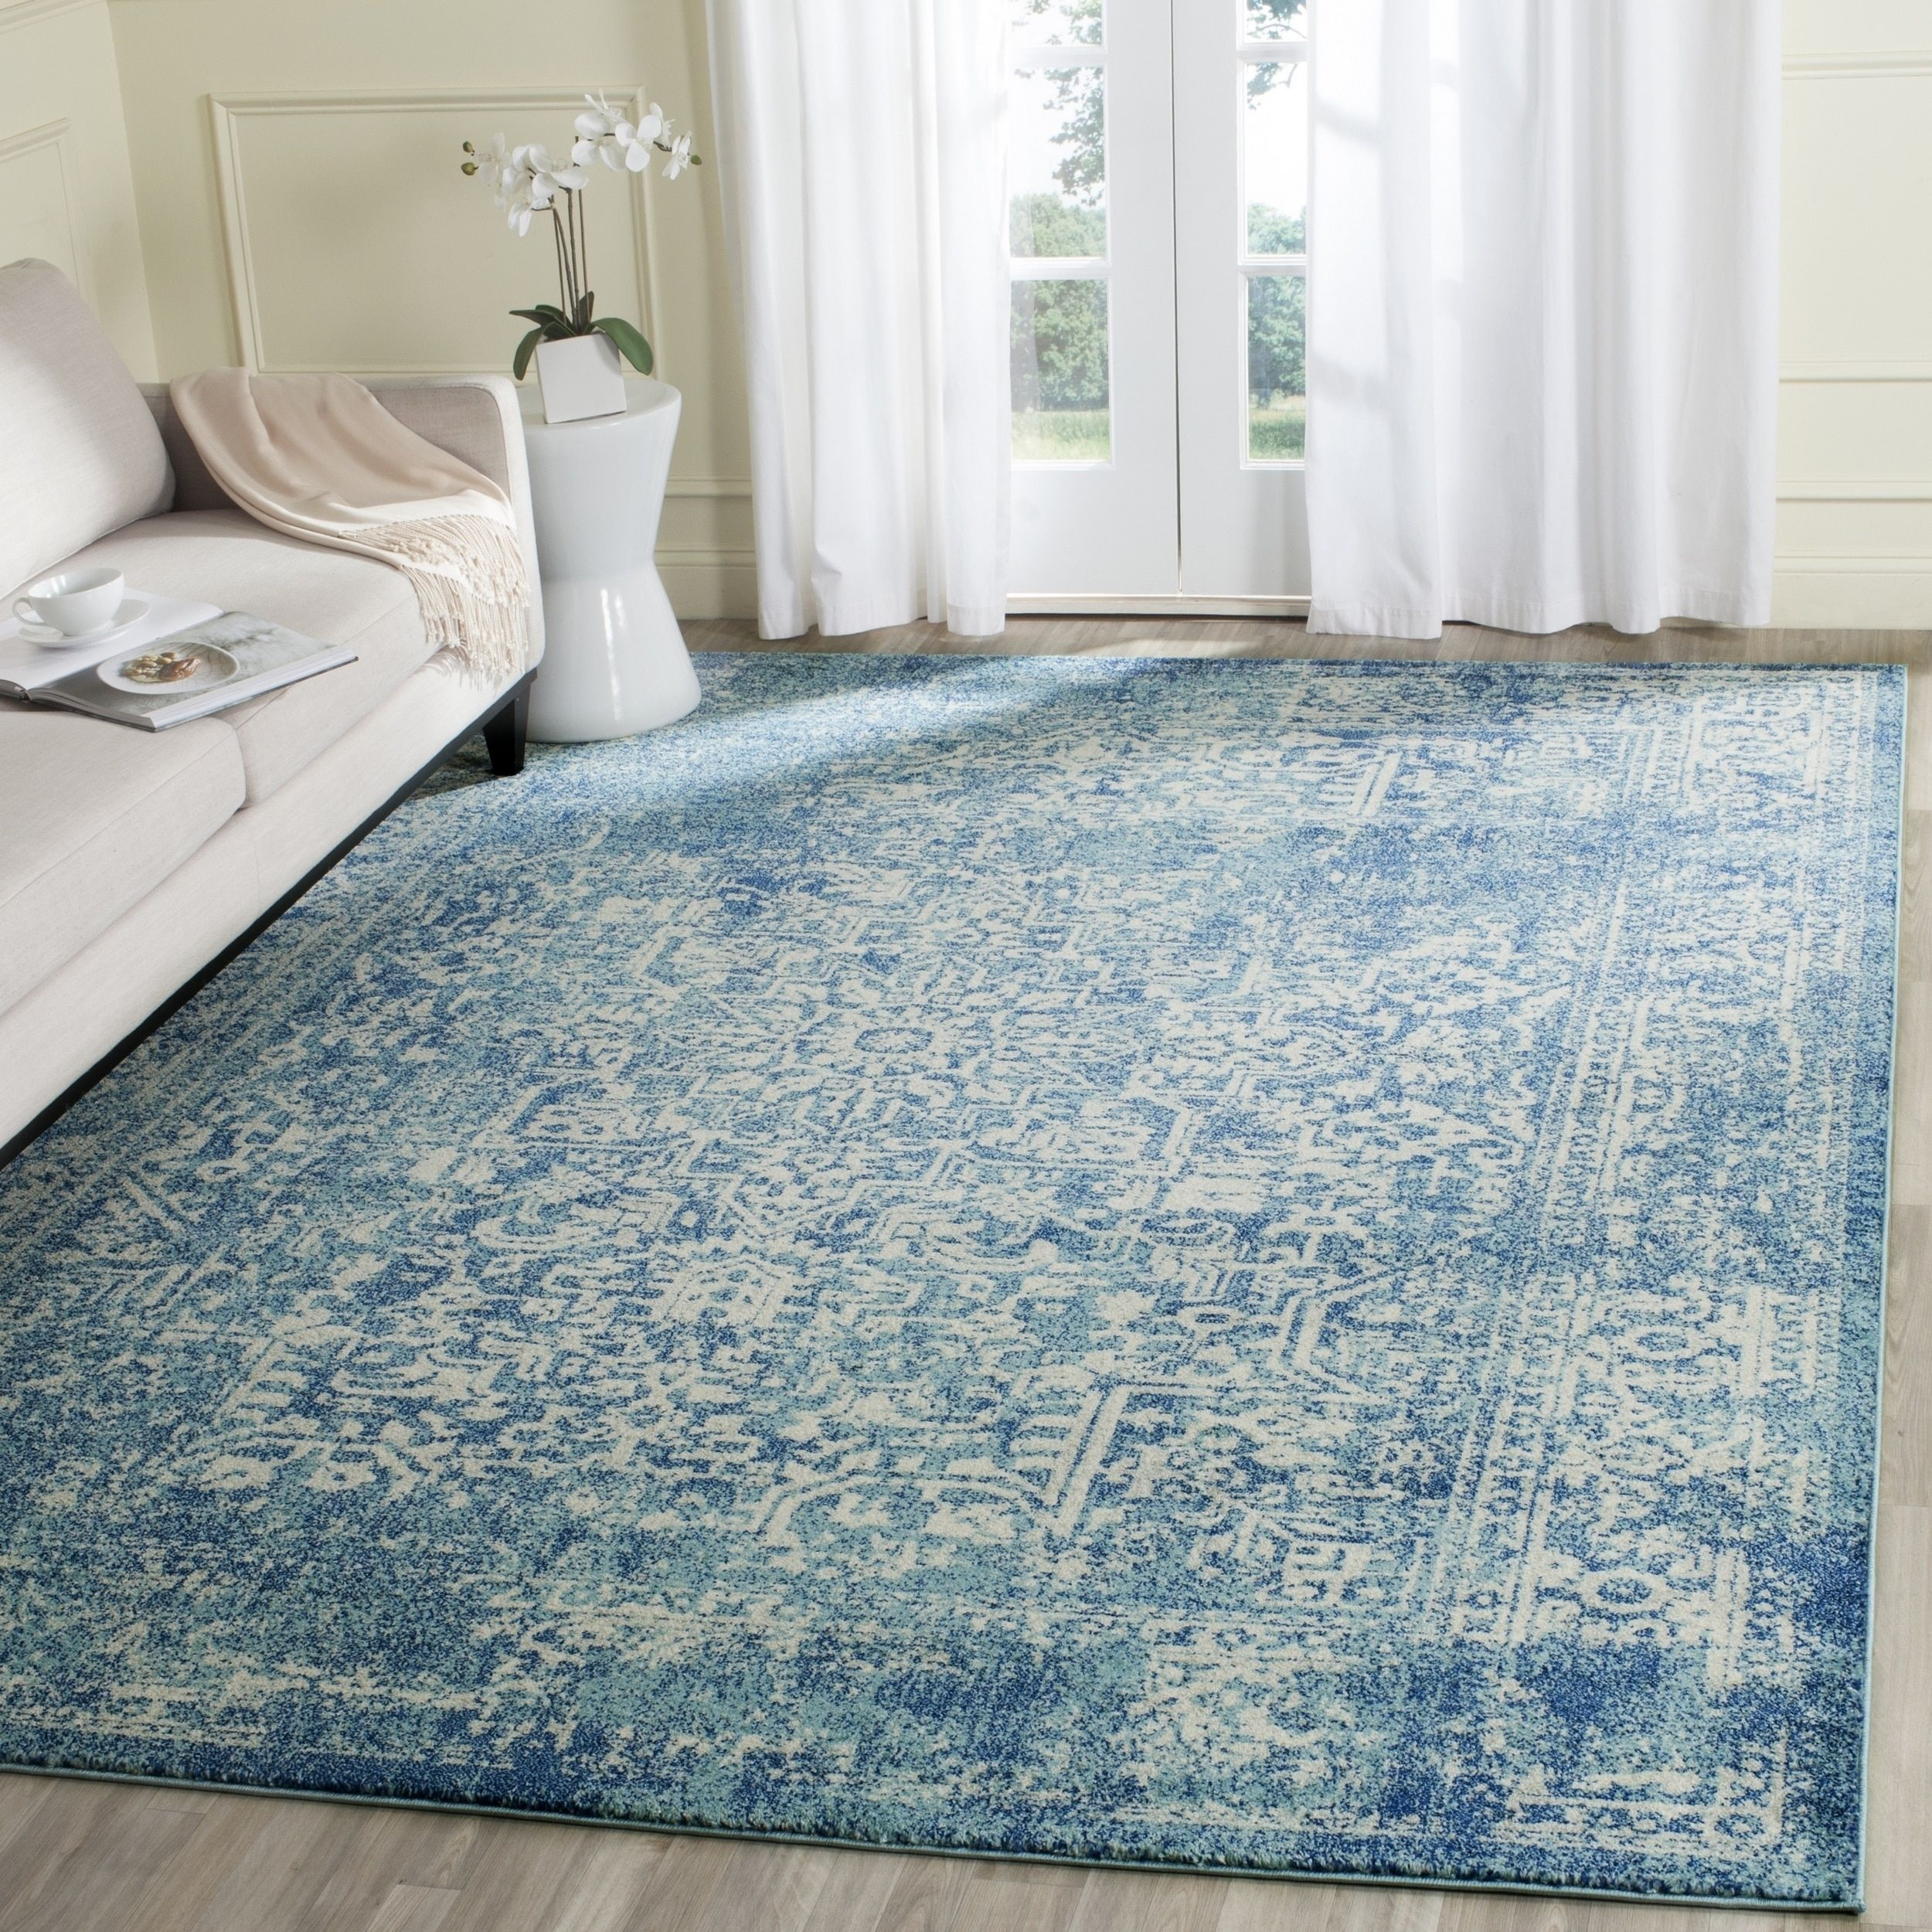 Blue 10 X 12 8 11 9 Indoor Cyber Monday Area Rugs 7x9 10x14 Use Large To Bring A New Mood An Old Room Or Plan